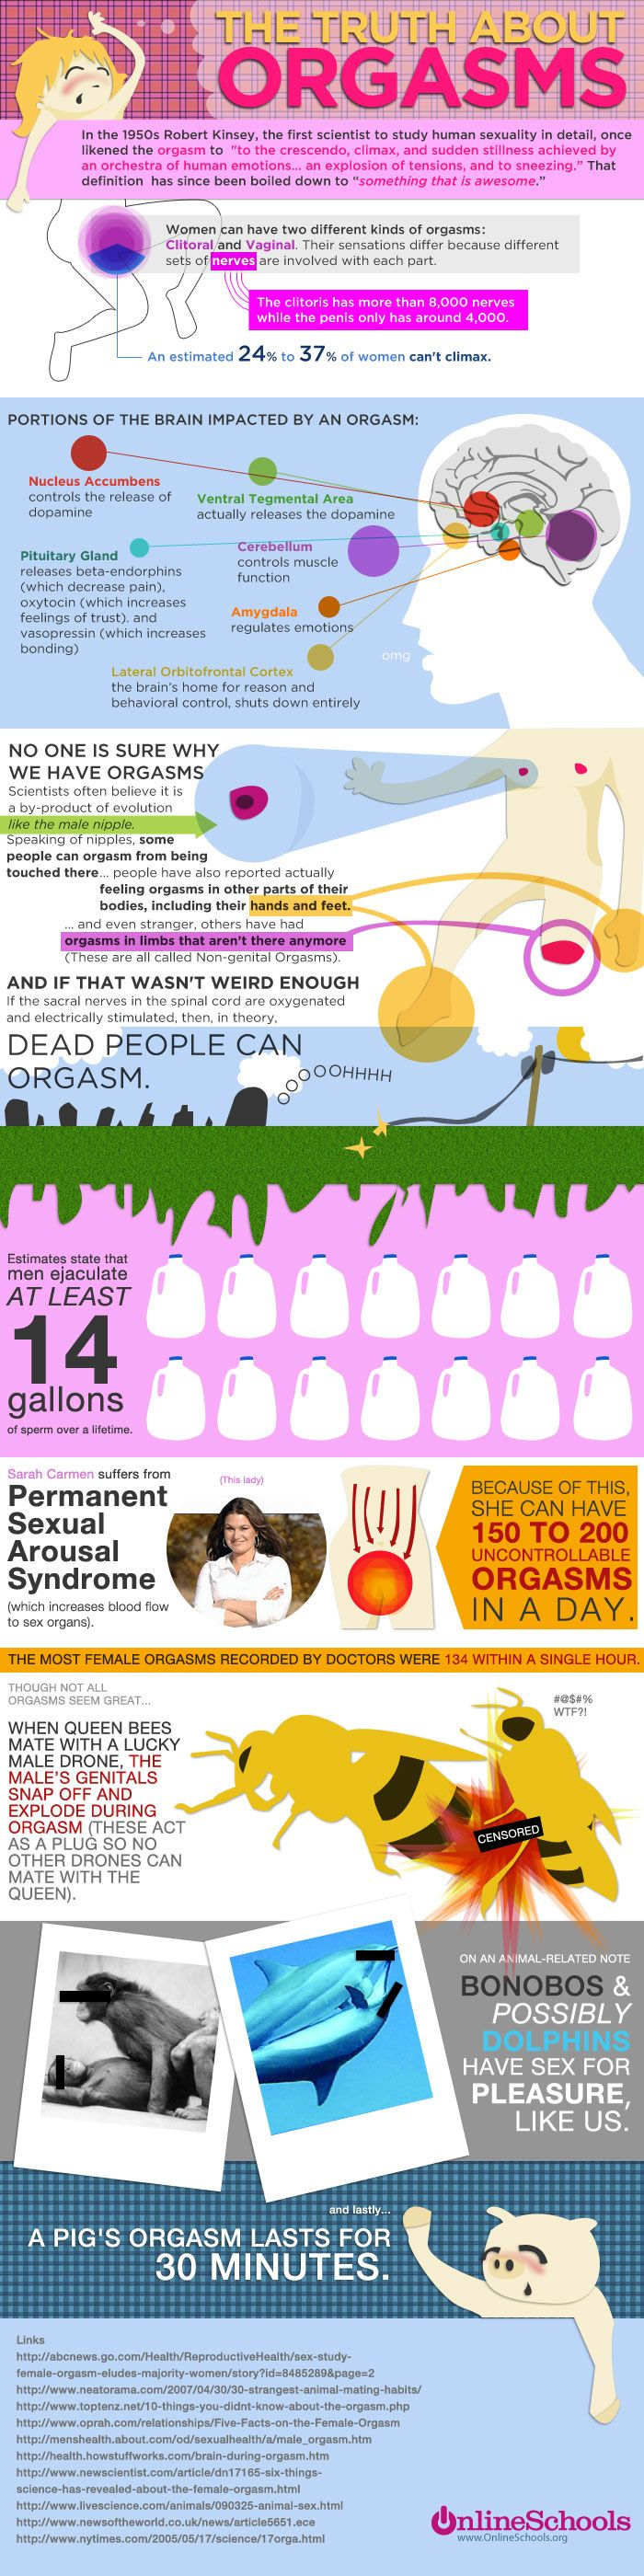 This Infographic Gives All The Facts And Information About An Orgasm